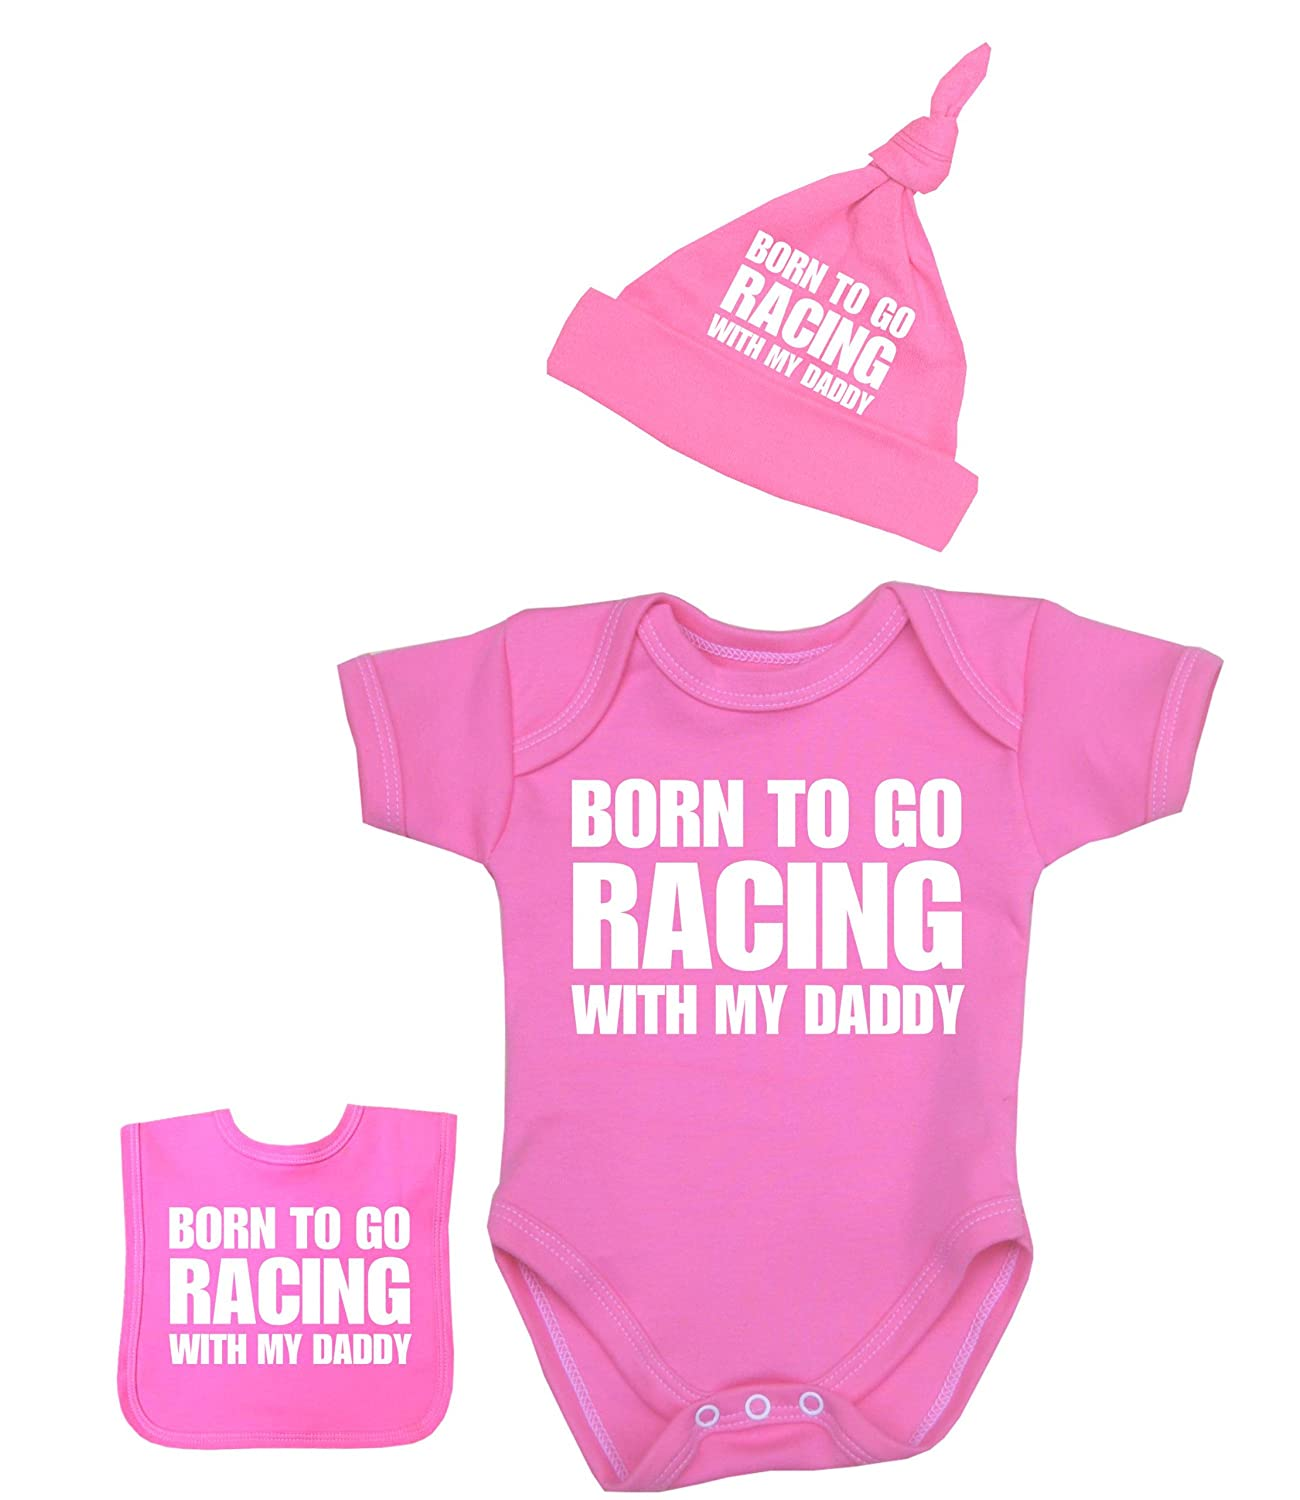 f97930c32 Amazon.com: BabyPrem Baby Born to go Racing with My Daddy Bodysuit Set 0-12  mth: Clothing